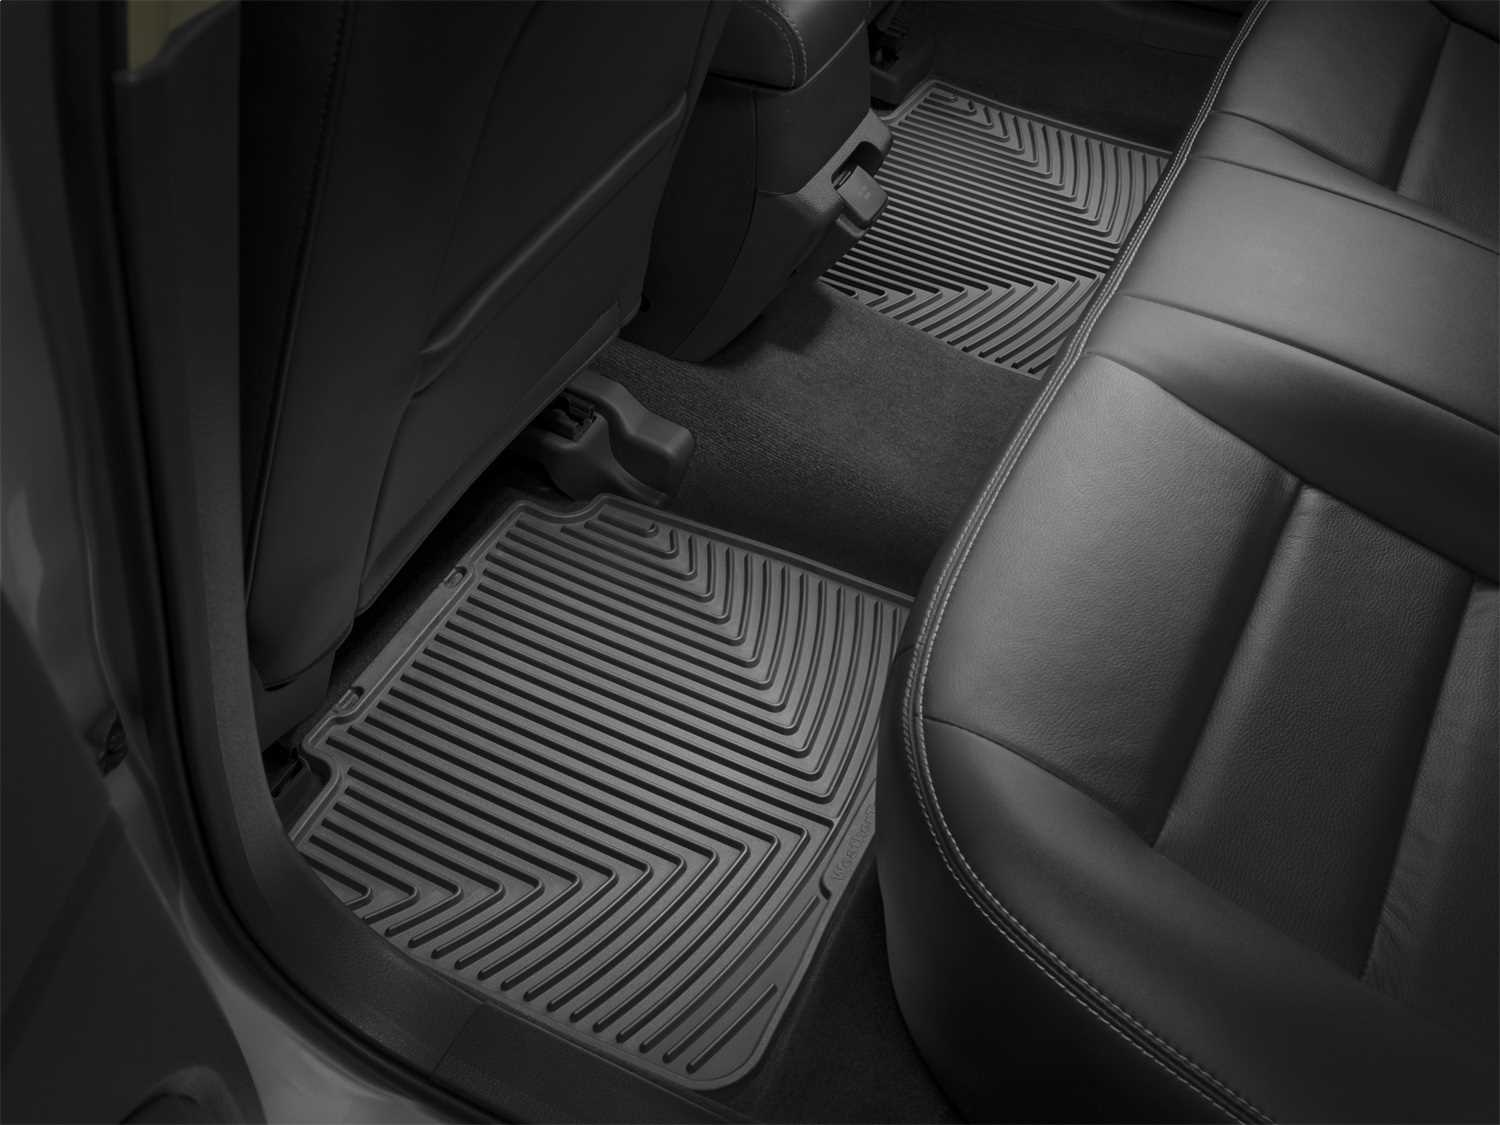 WTFB395396 WeatherTech All Weather Floor Mats